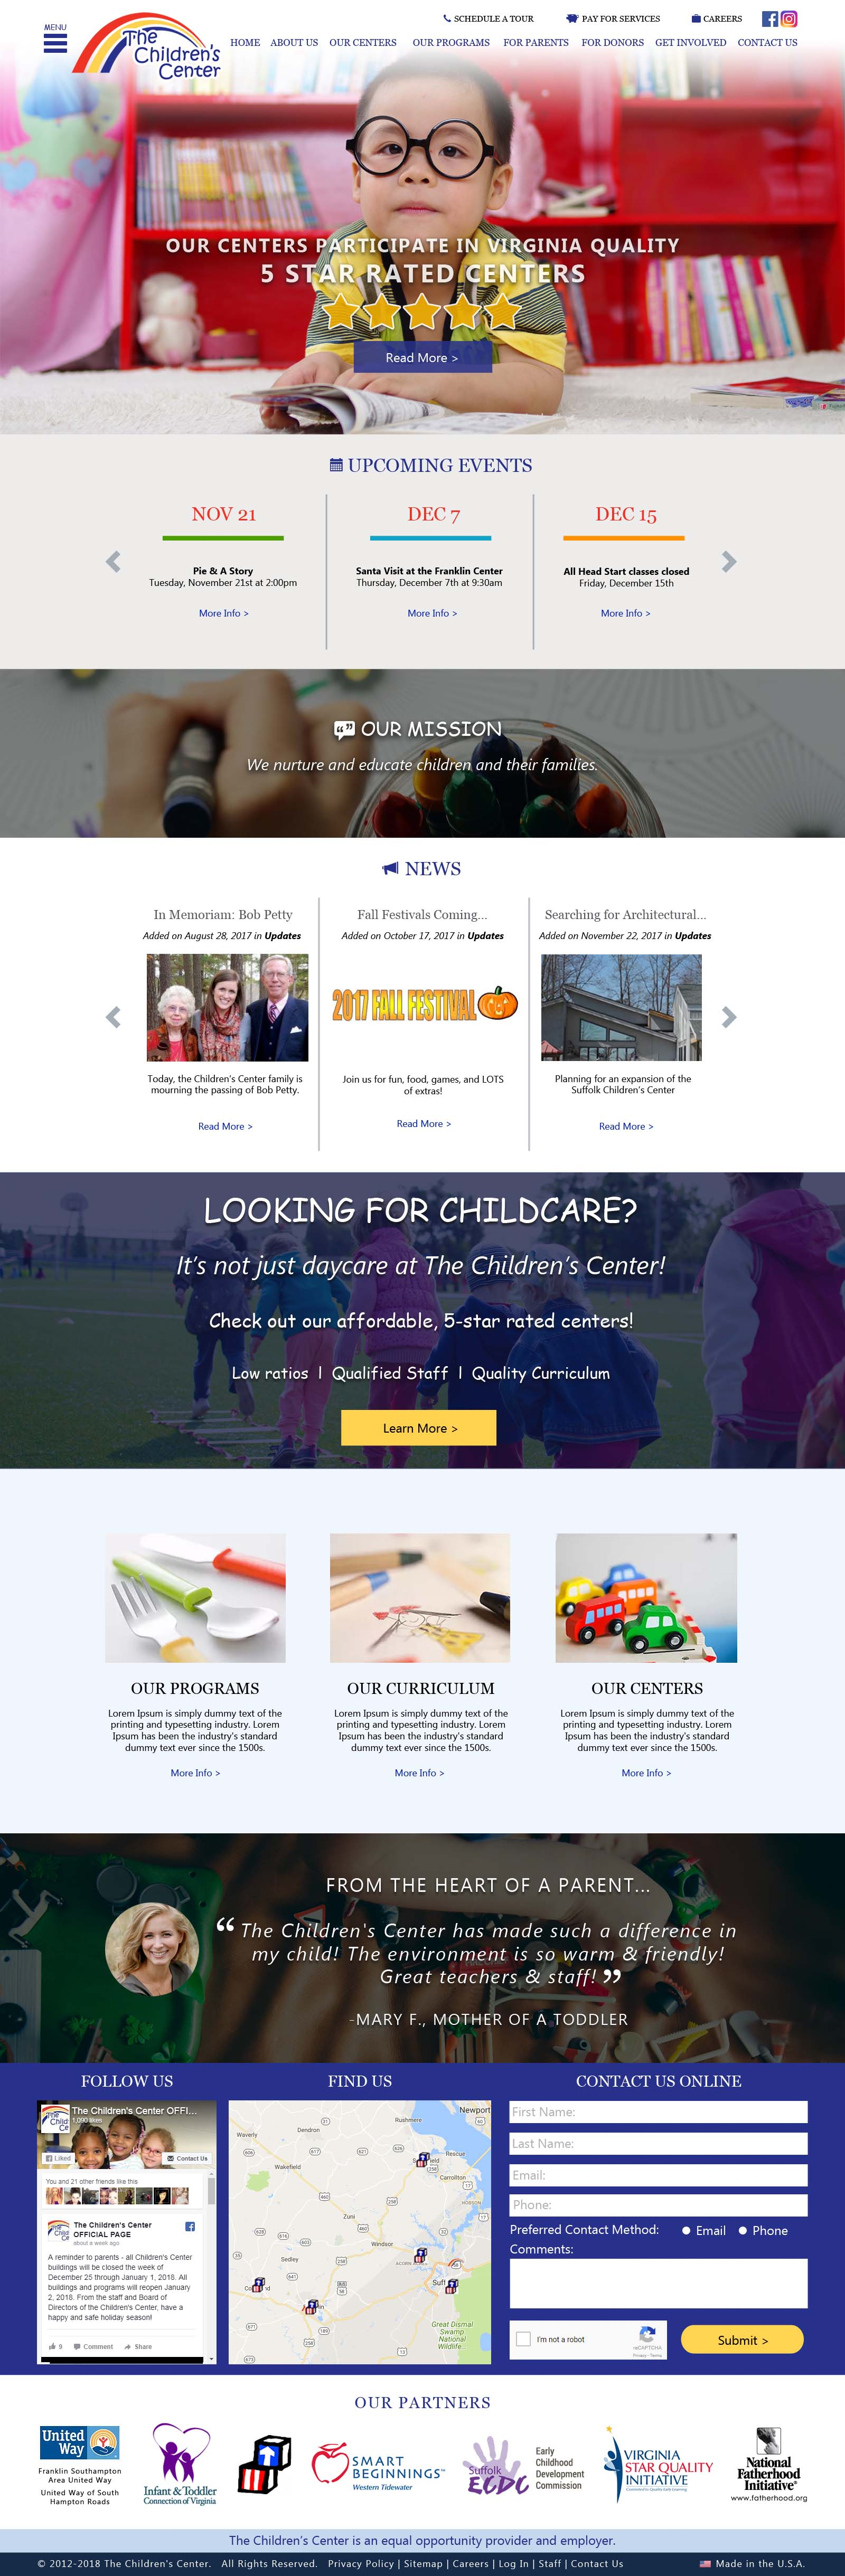 ChildrensCenterVA.com (2018)